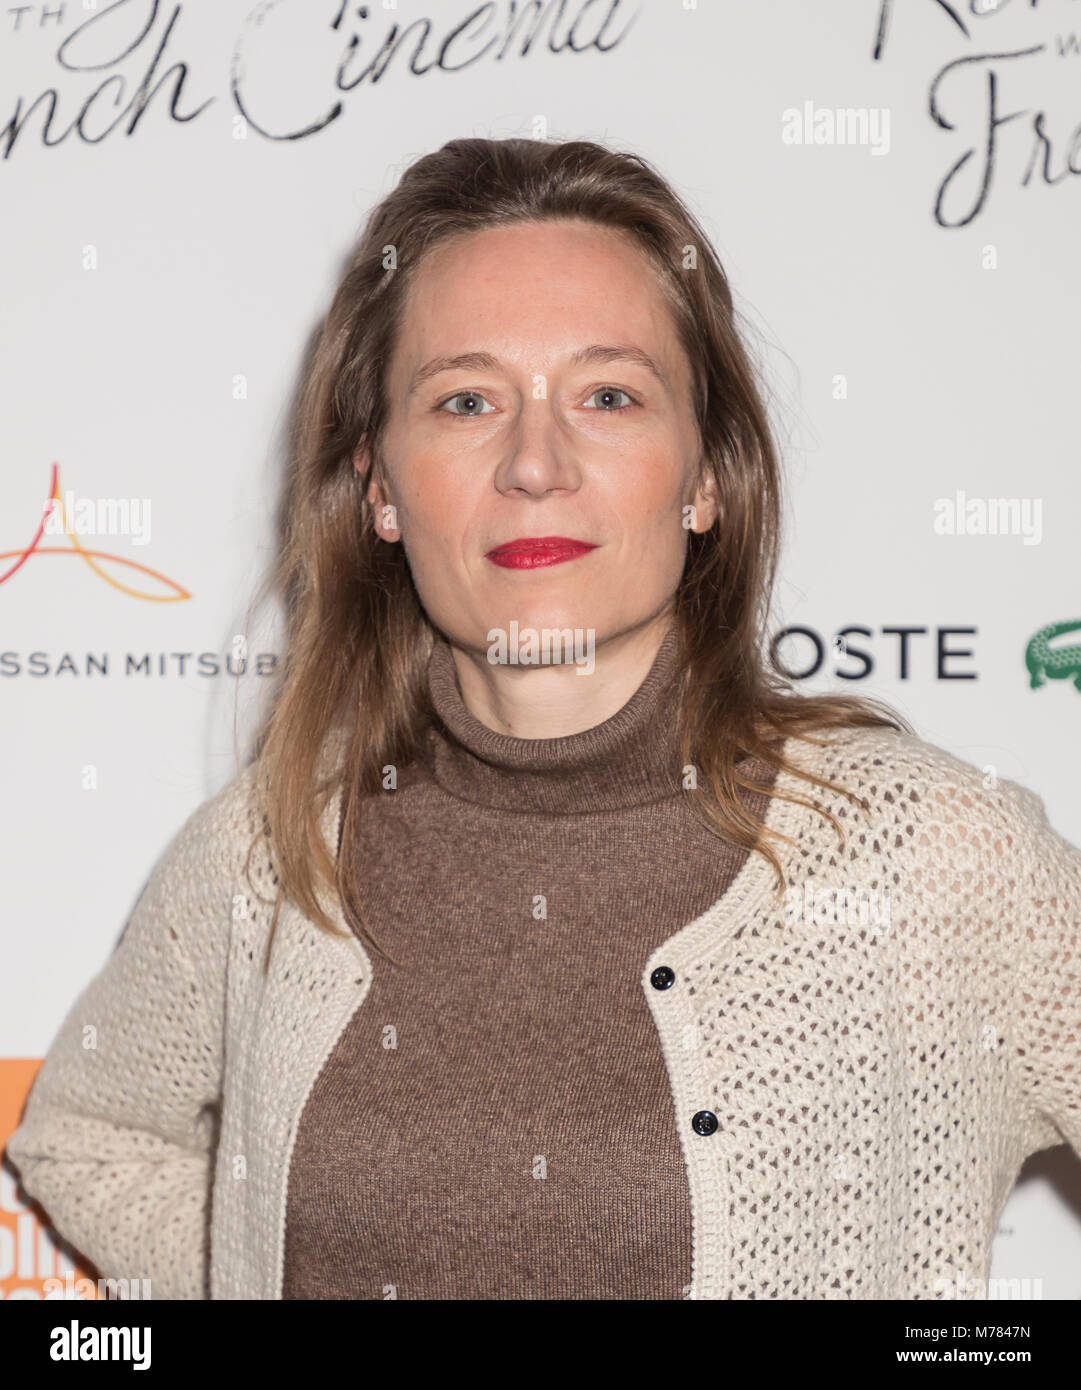 New York, NY, USA - March 8, 2018: Marine Francen attends Renez-Vous with French Cinema Opening Night - Barbara - Stock Image